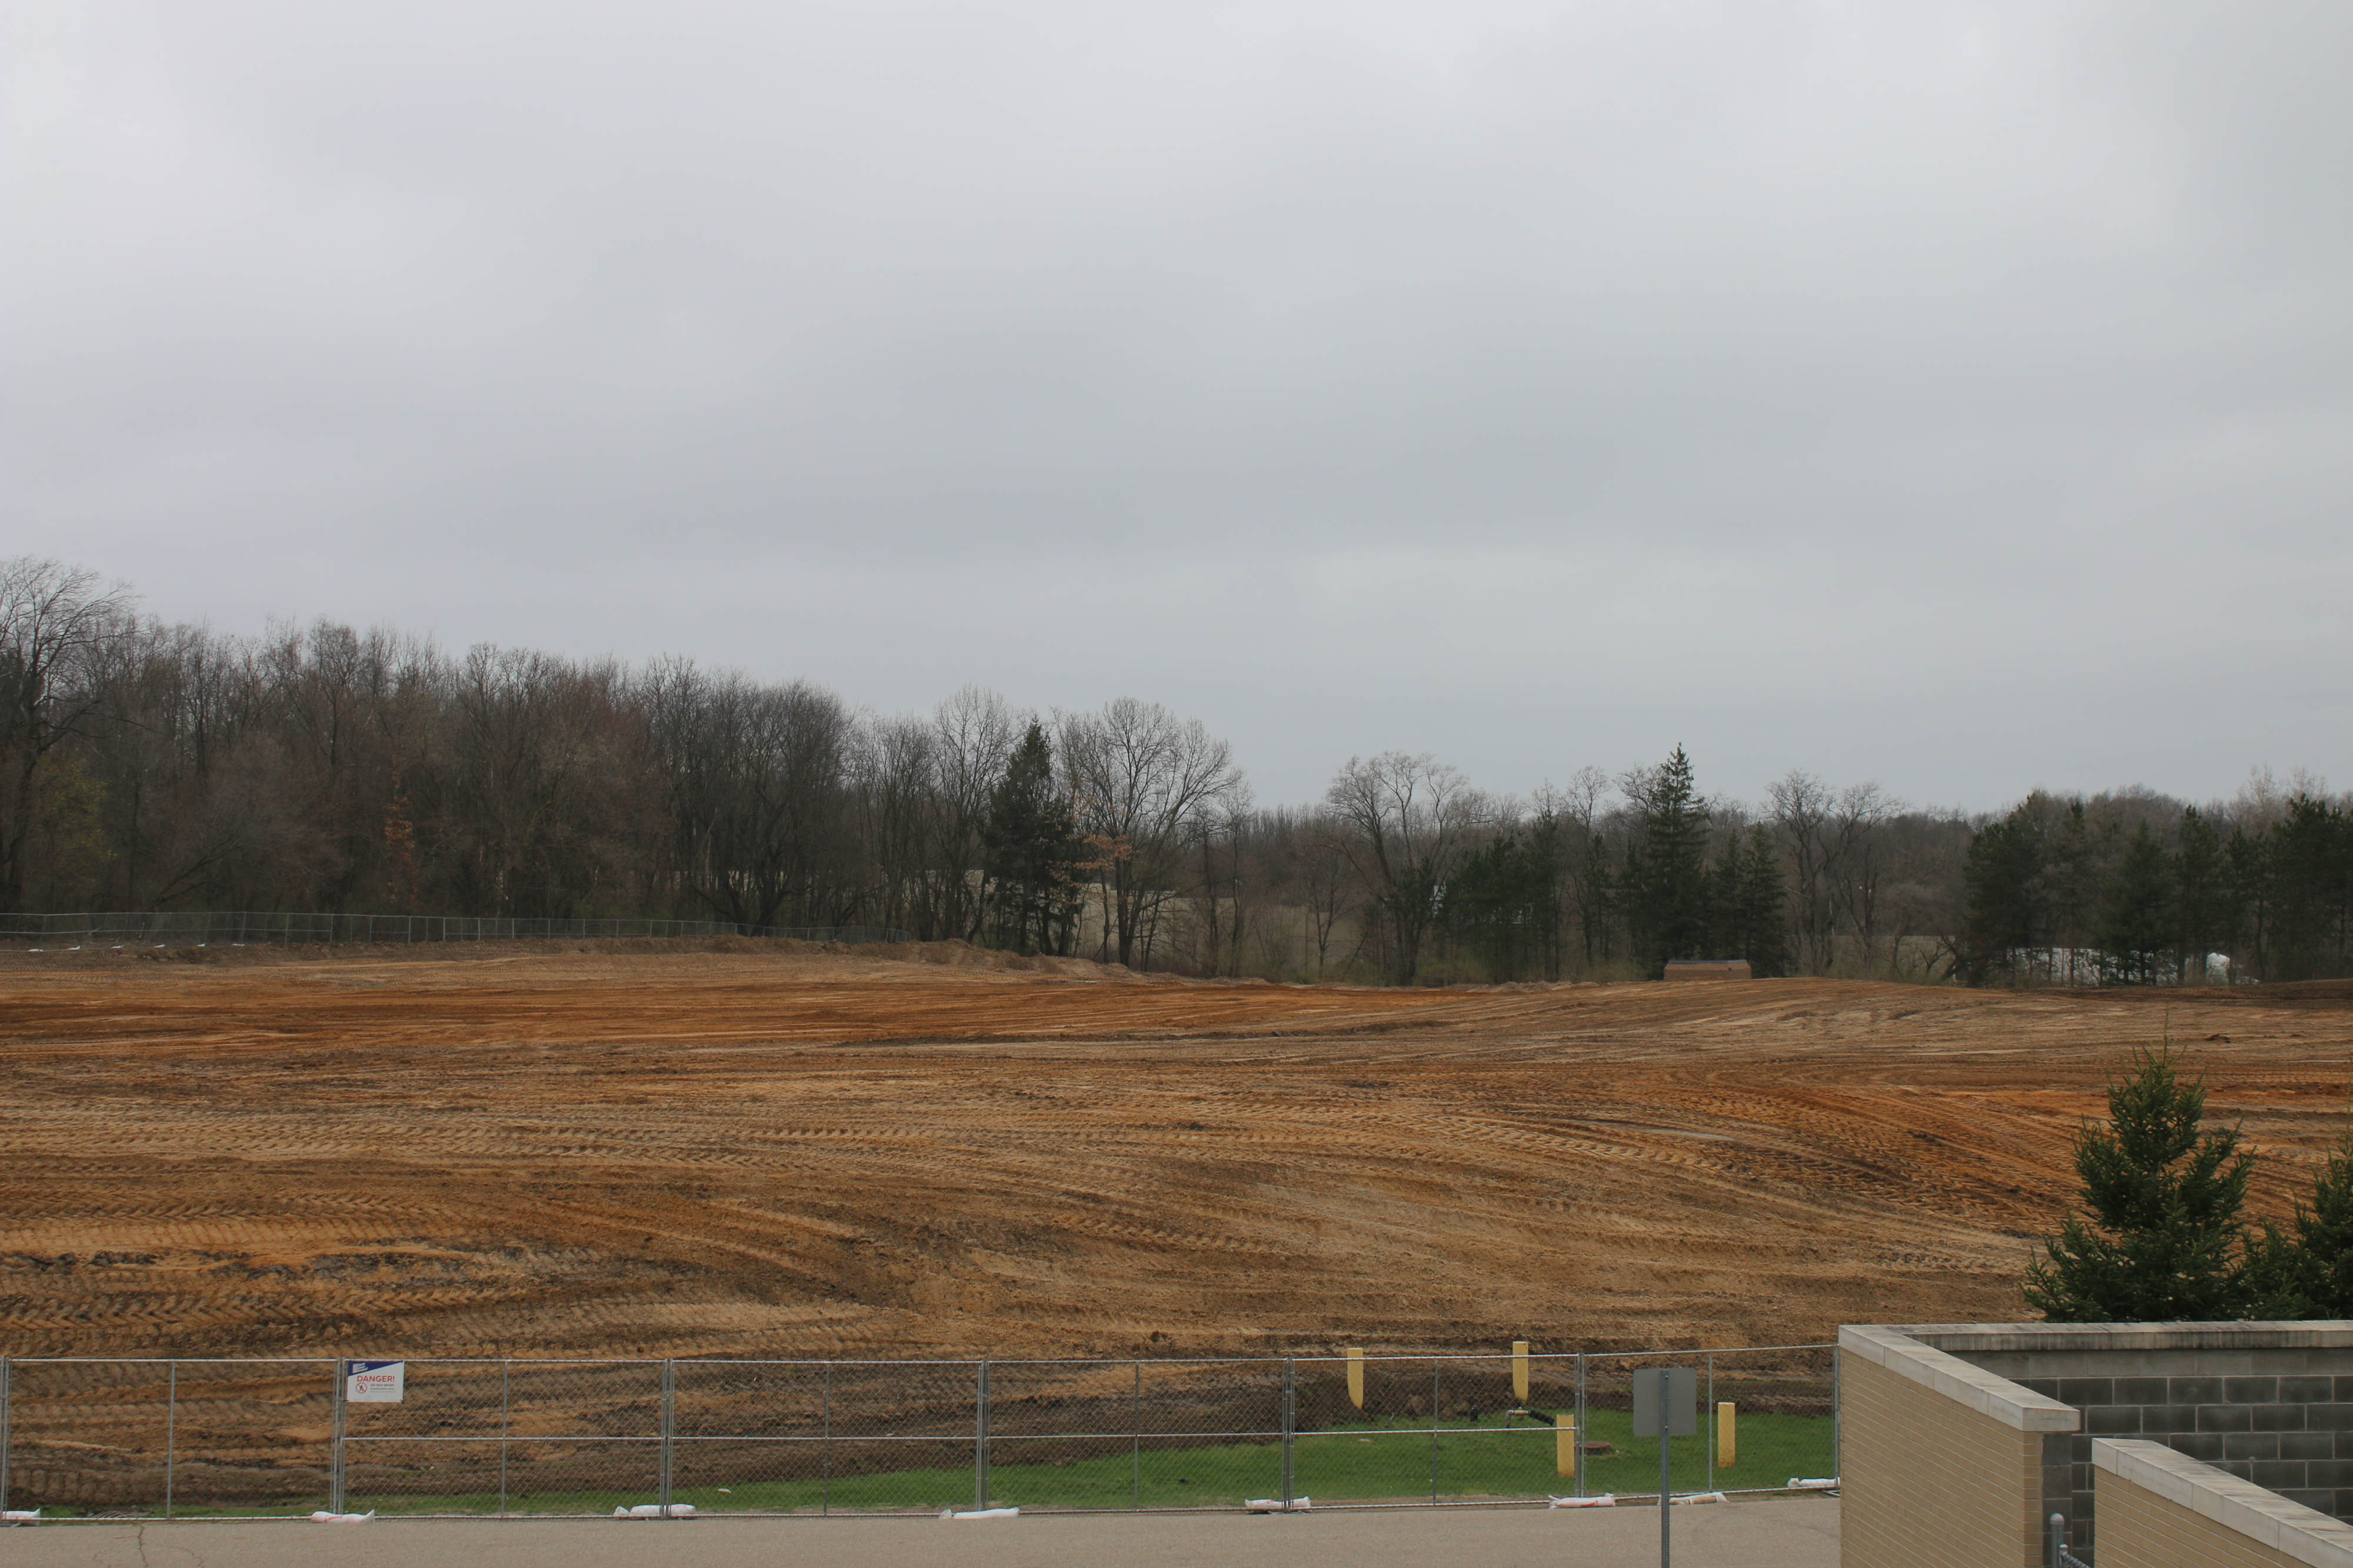 The old lacrosse field, which is the future stadium site.